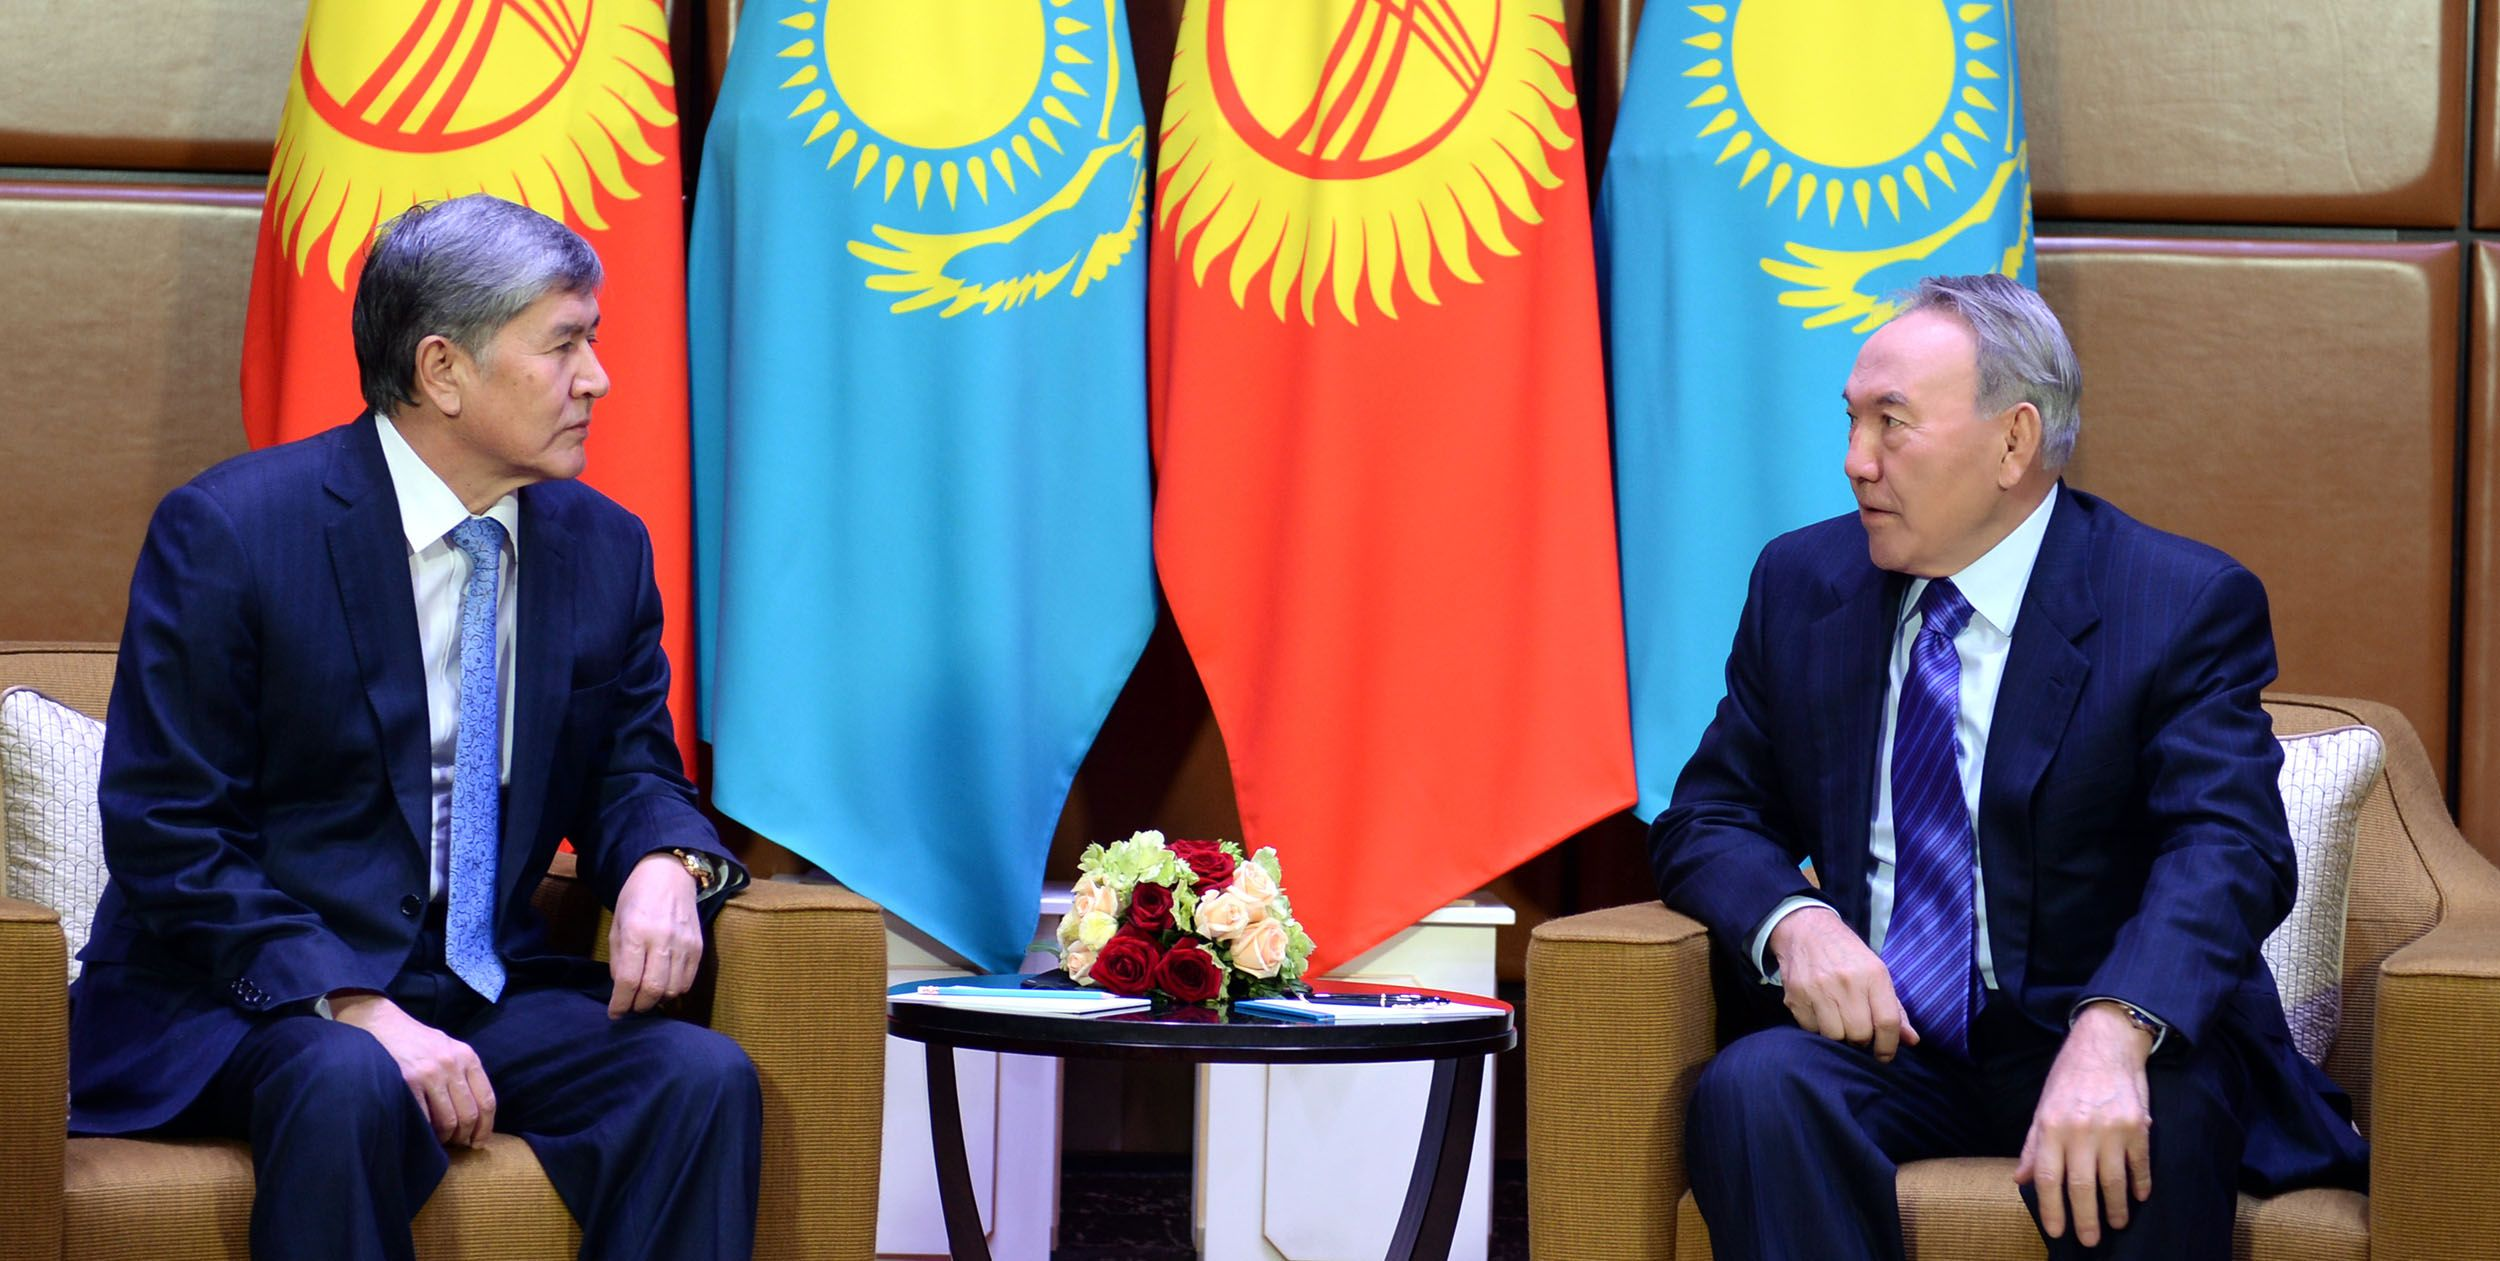 President Nursultan Nazarbayev during his working visit to Almaty held a meeting with President of Kyrgyzstan Almazbek Atambayev on March 26, 2014.